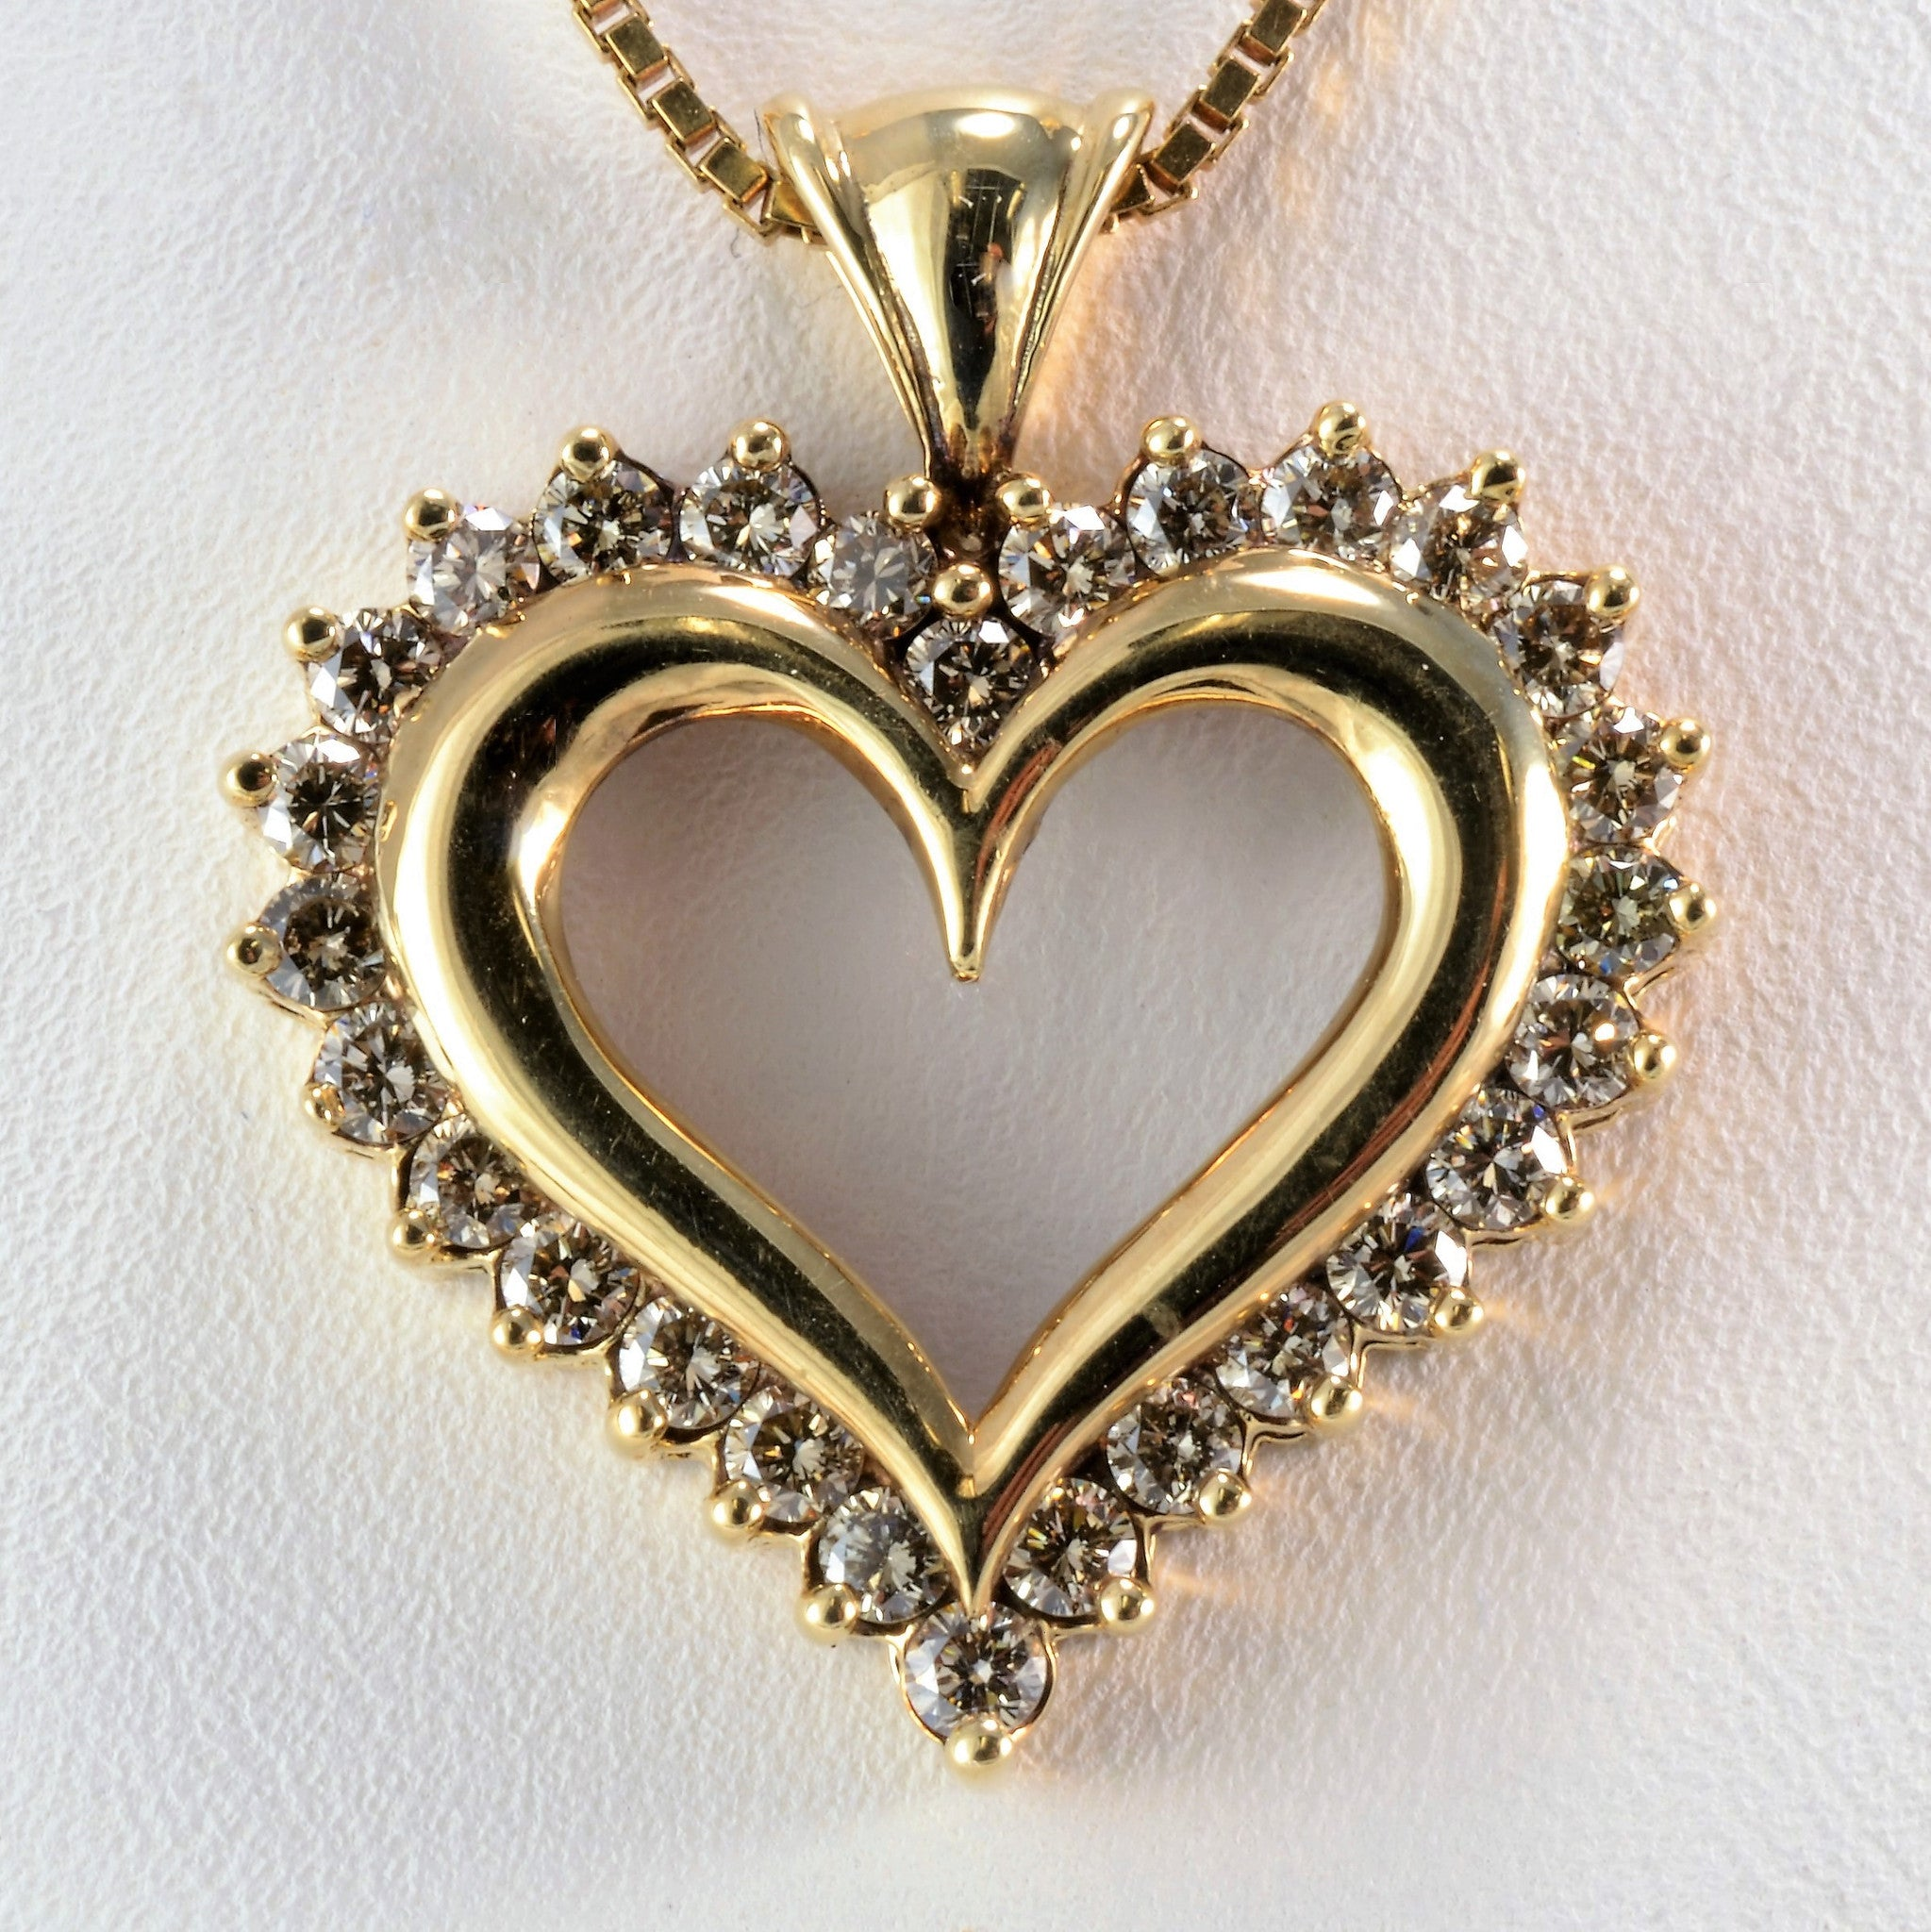 Diamond Accented Heart Necklace | 1.00 ctw, 22"